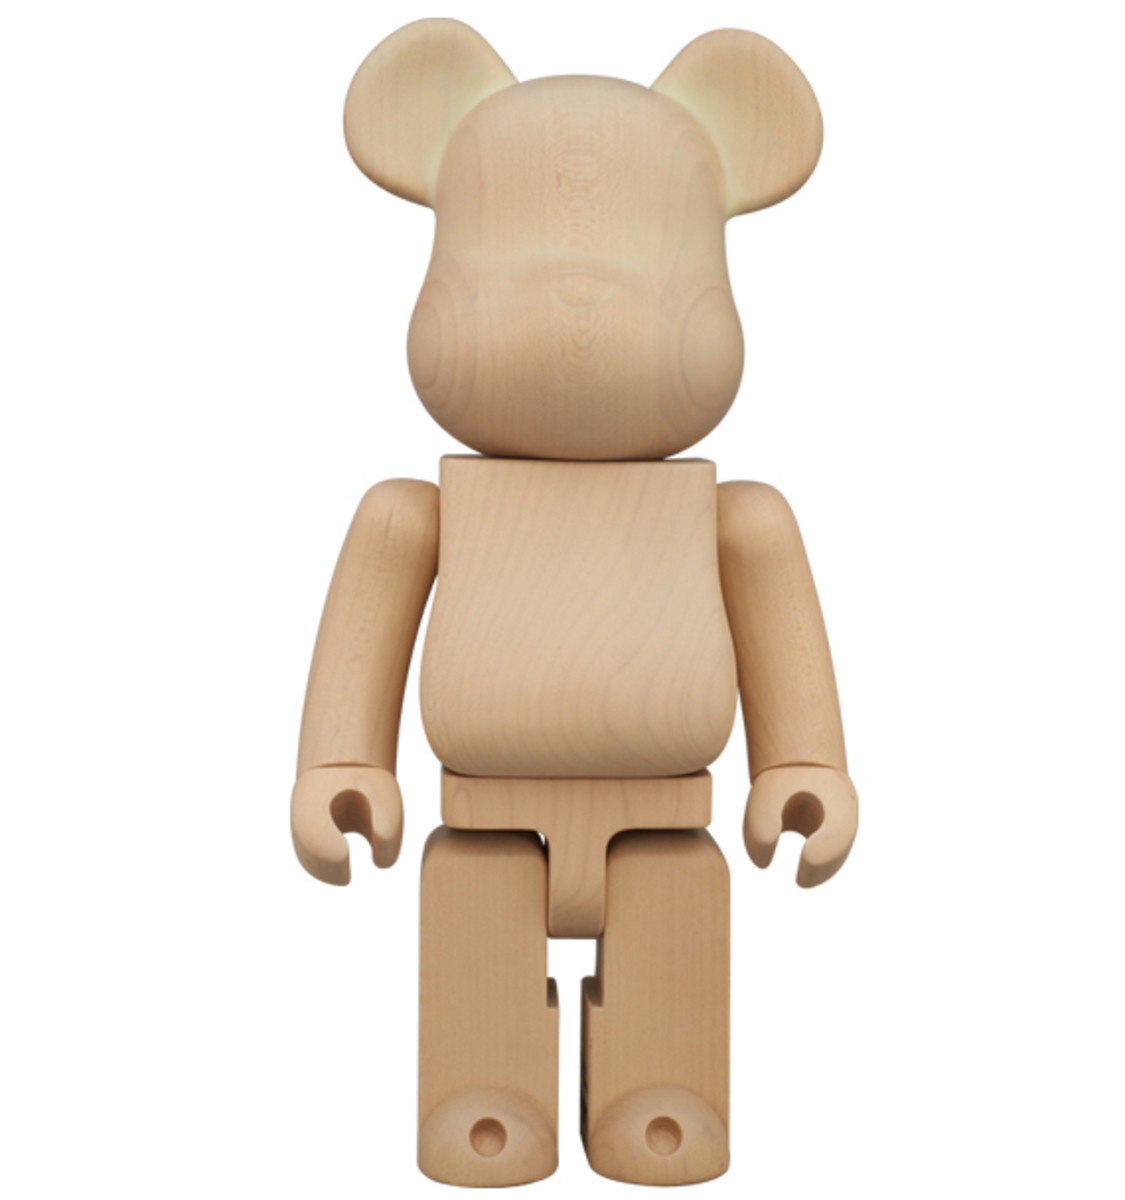 karimoku-medicom-toy-glow-in-the-dark-bearbrick-01